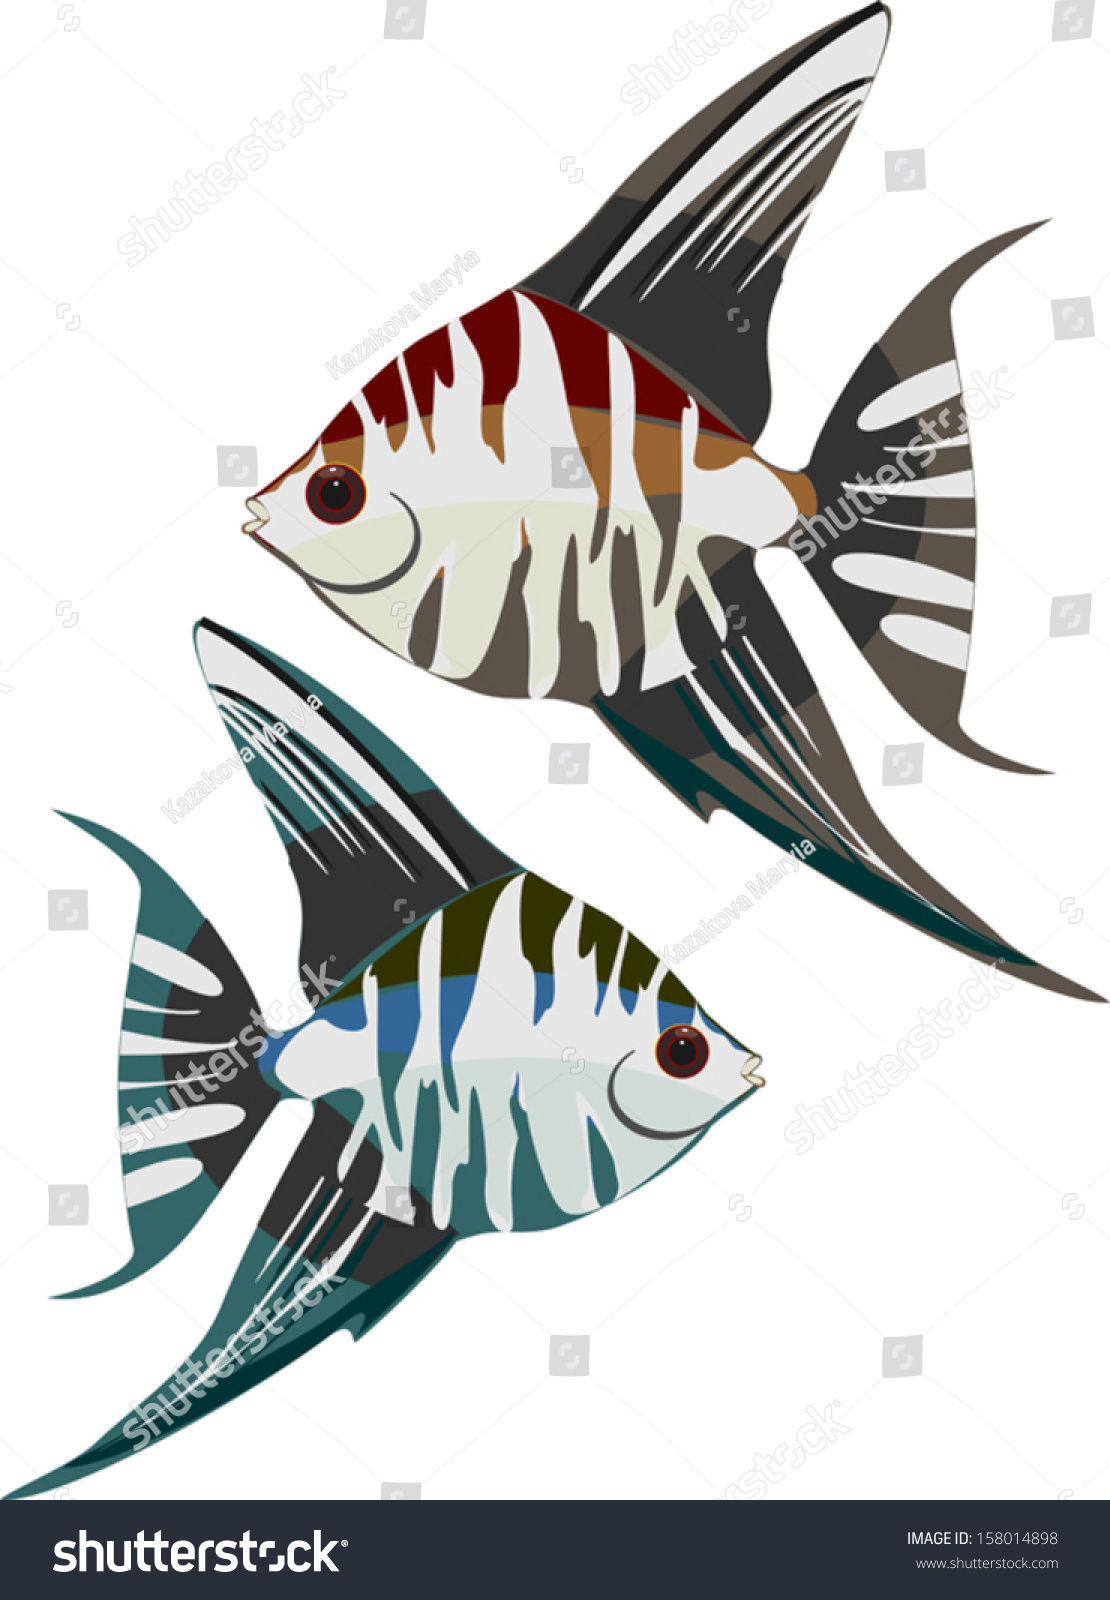 Freshwater aquarium fish angelfish - Altum Angelfish Or Orinoco Angelfish Freshwater Aquarium Fish